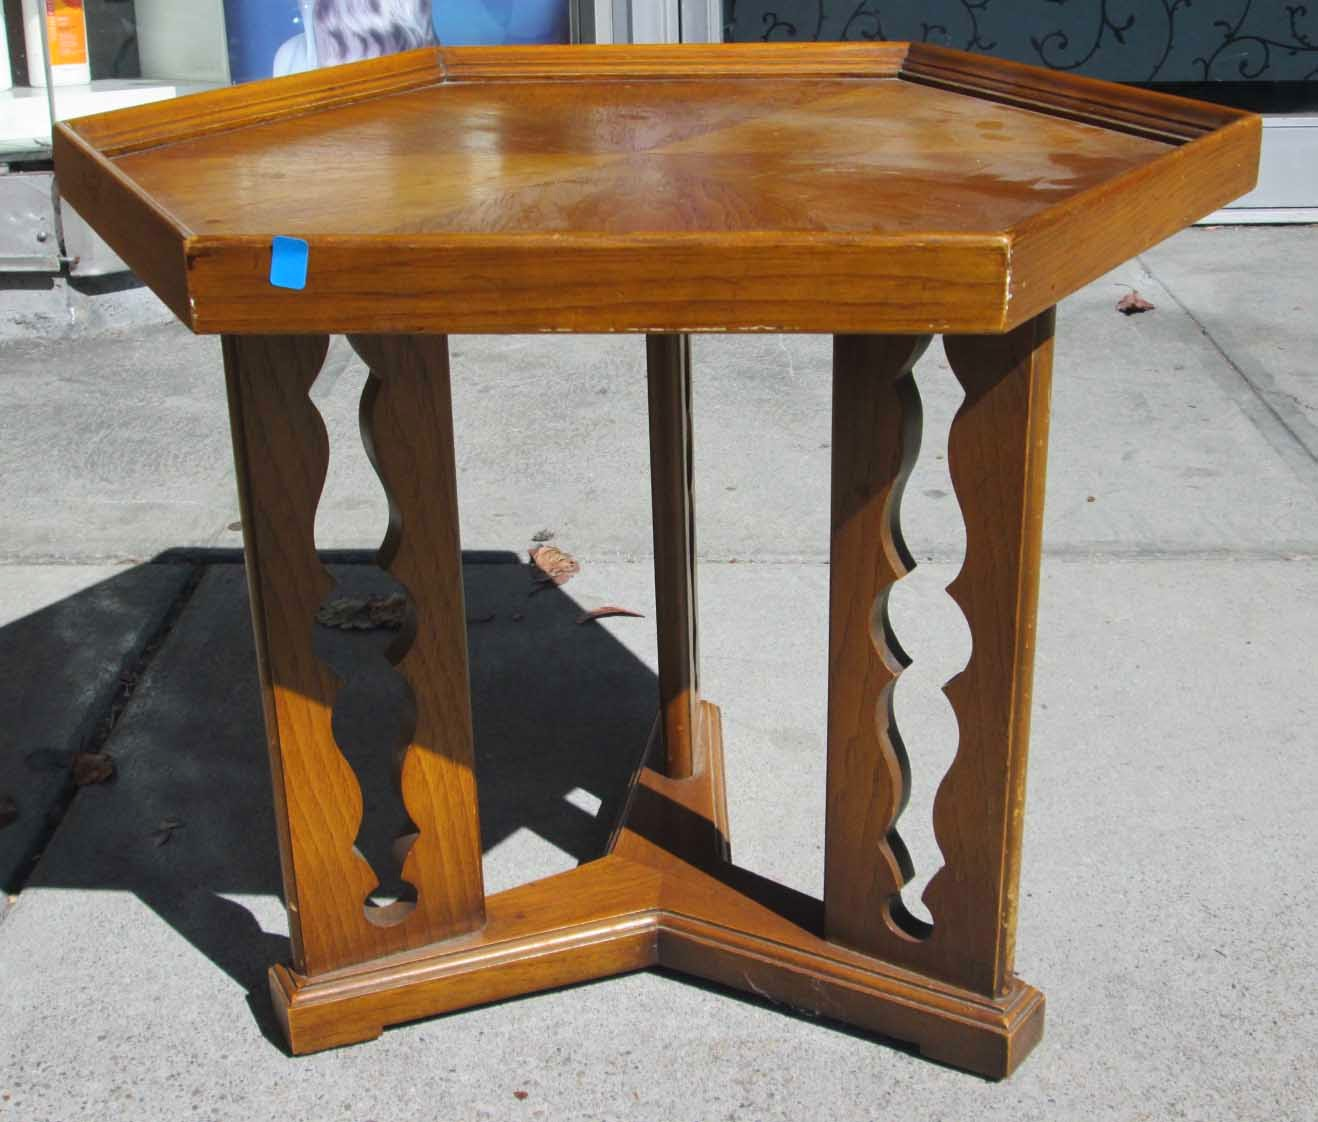 UHURU FURNITURE & COLLECTIBLES: SOLD End Table With Unique